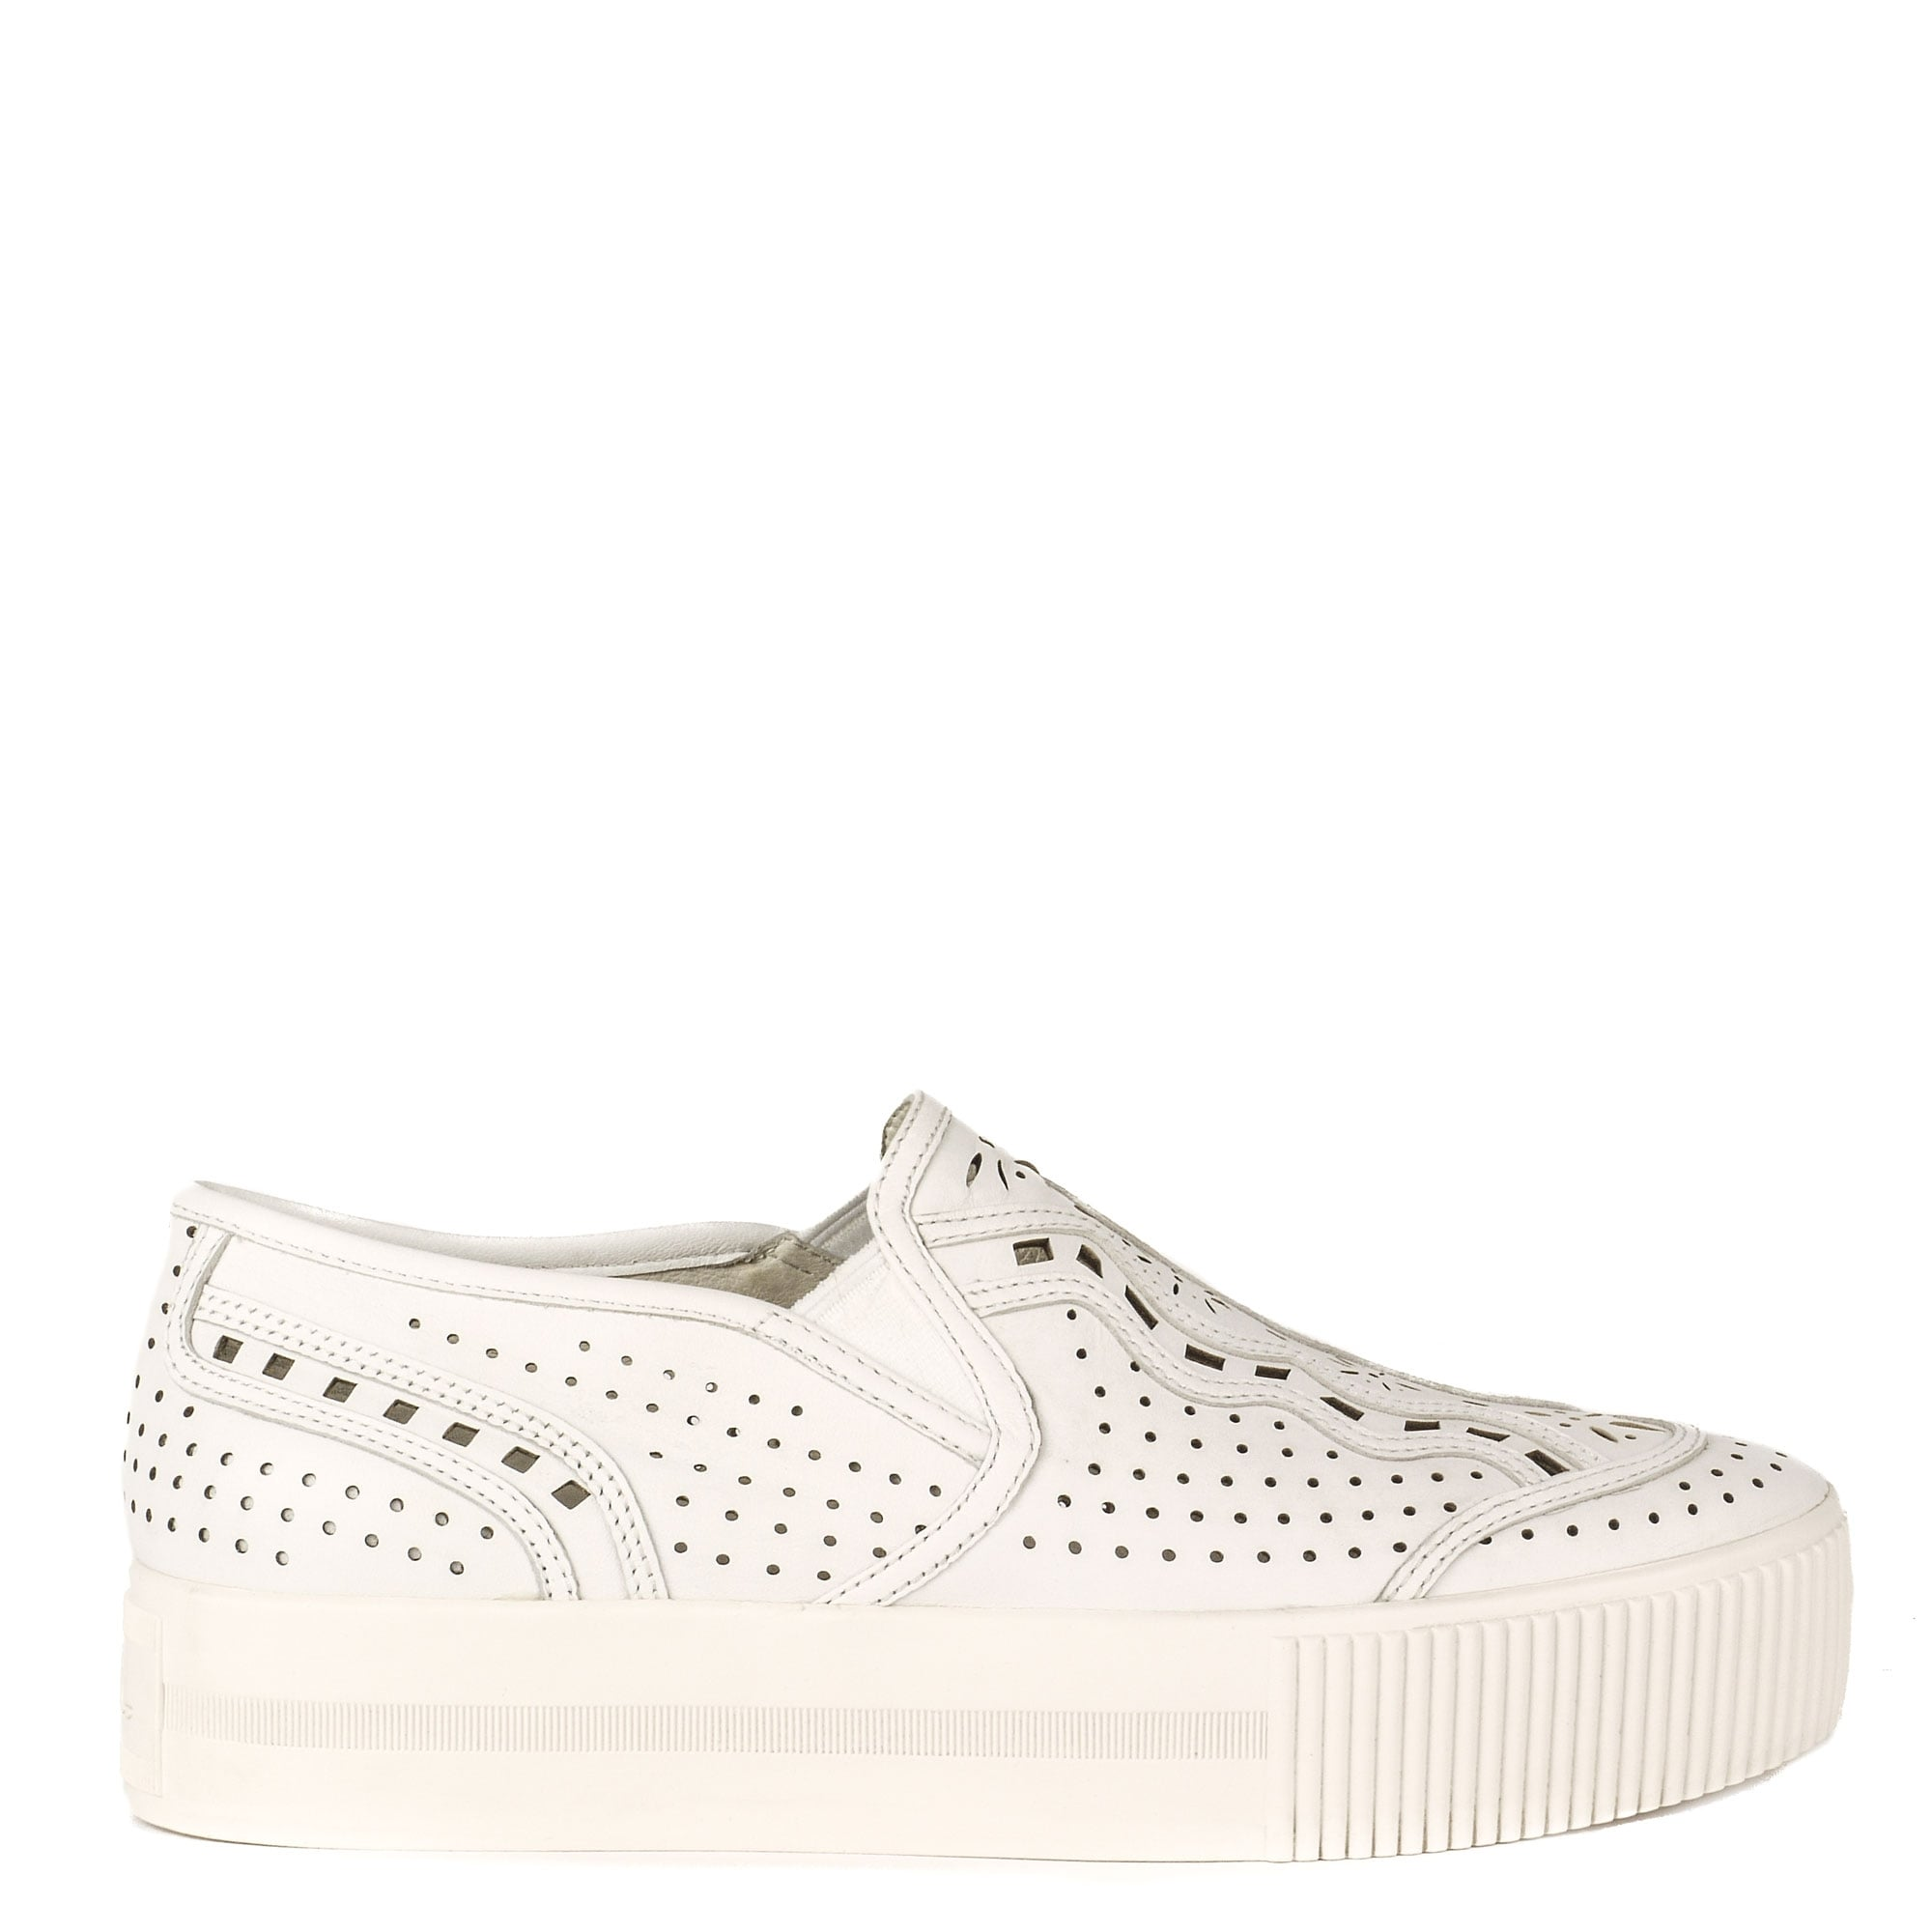 Ash Kingston Trainers in White Leather